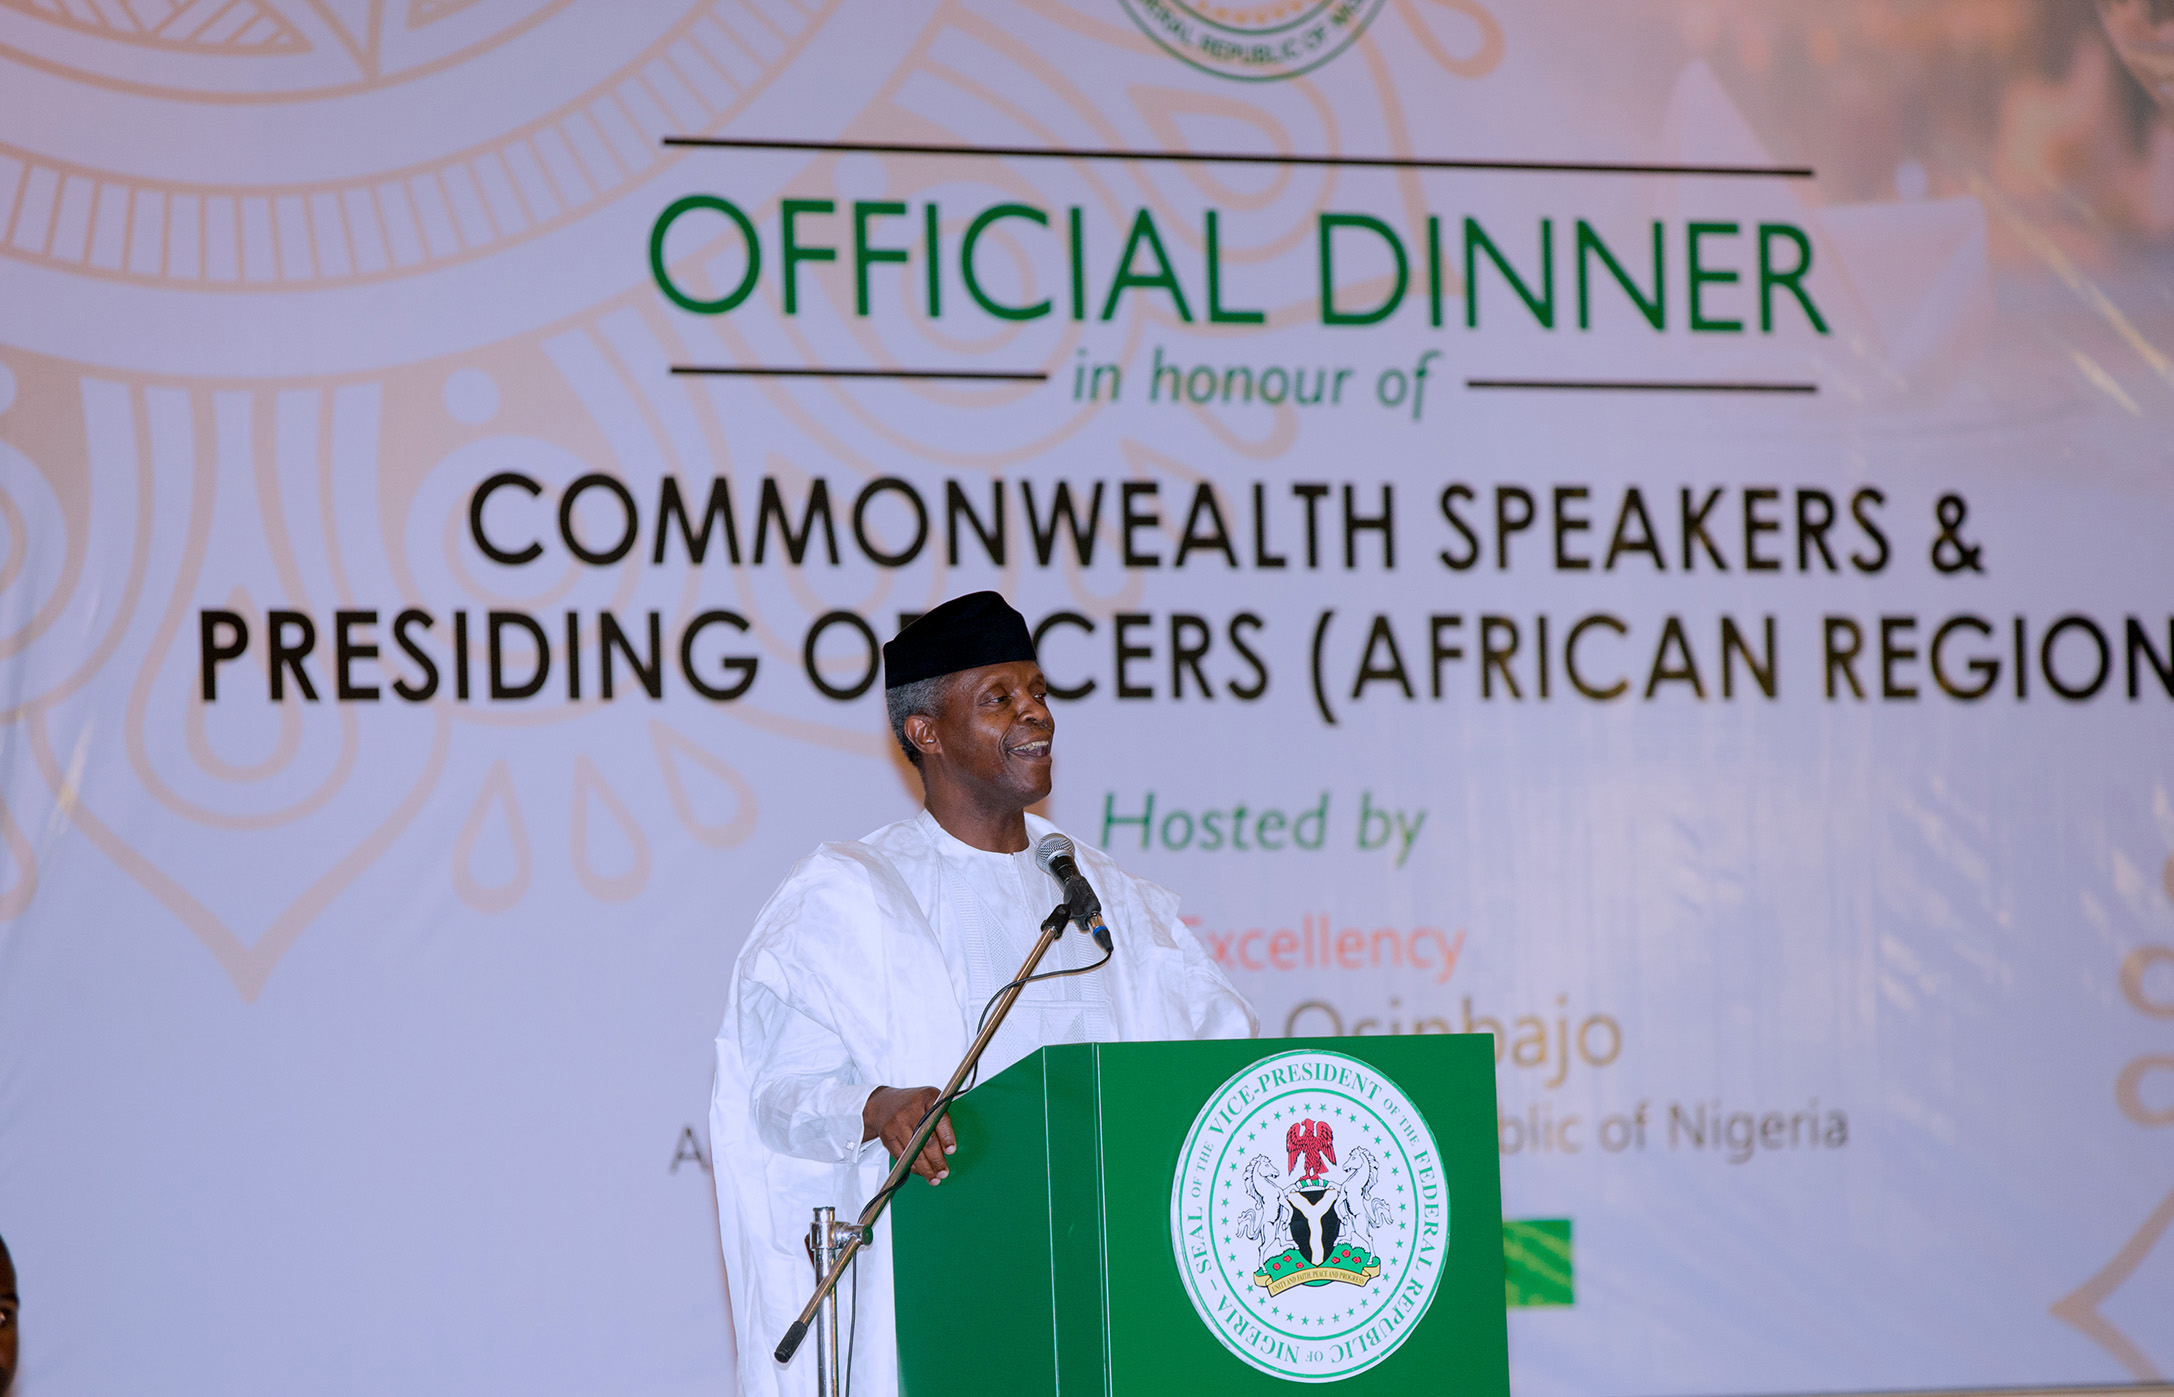 AG PRESIDENT OSINBAJO DINNER 4 COMMONWEALTH SPEAKERS. 0A. Acting President Yemi Osinbajo SAN during a dinner in honour of the Commonwealth Speakers and Presiding officers (African Region) held at the Banquet Hall Presidential Villa Abuja. PHOTO; SUNDAY AGHAEZE/STATE HOUSE. JULY 25 2017.